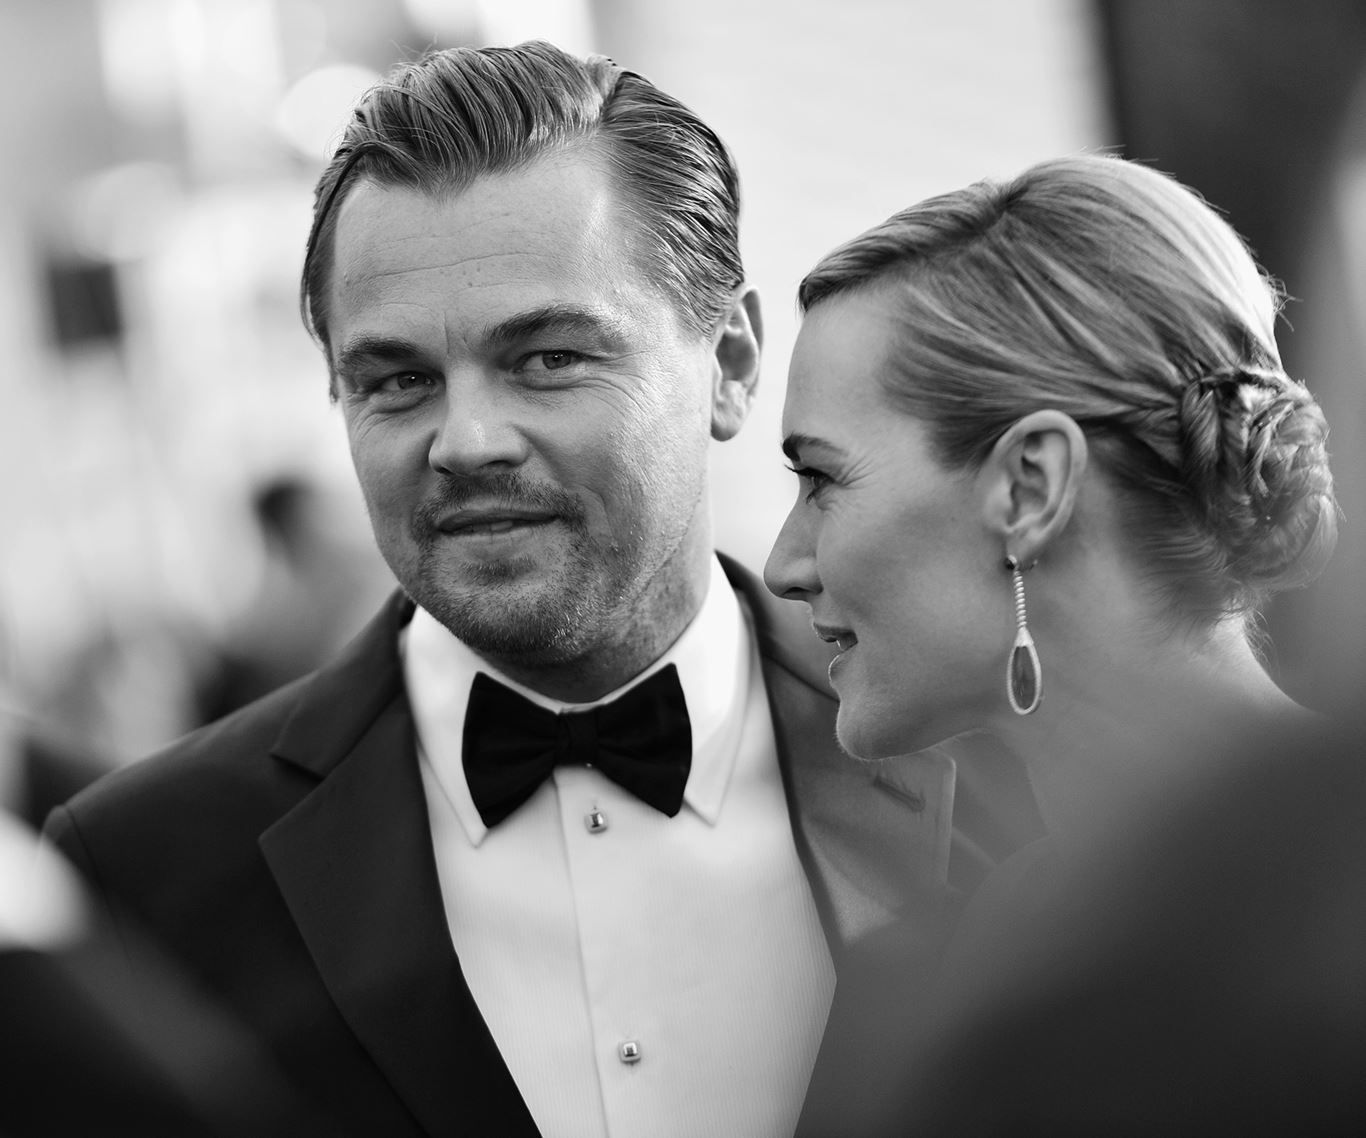 Kate Winslet and Leonardo Di Caprio walk the red carpet together at the SAG Awards on Saturday night.: [object Object]